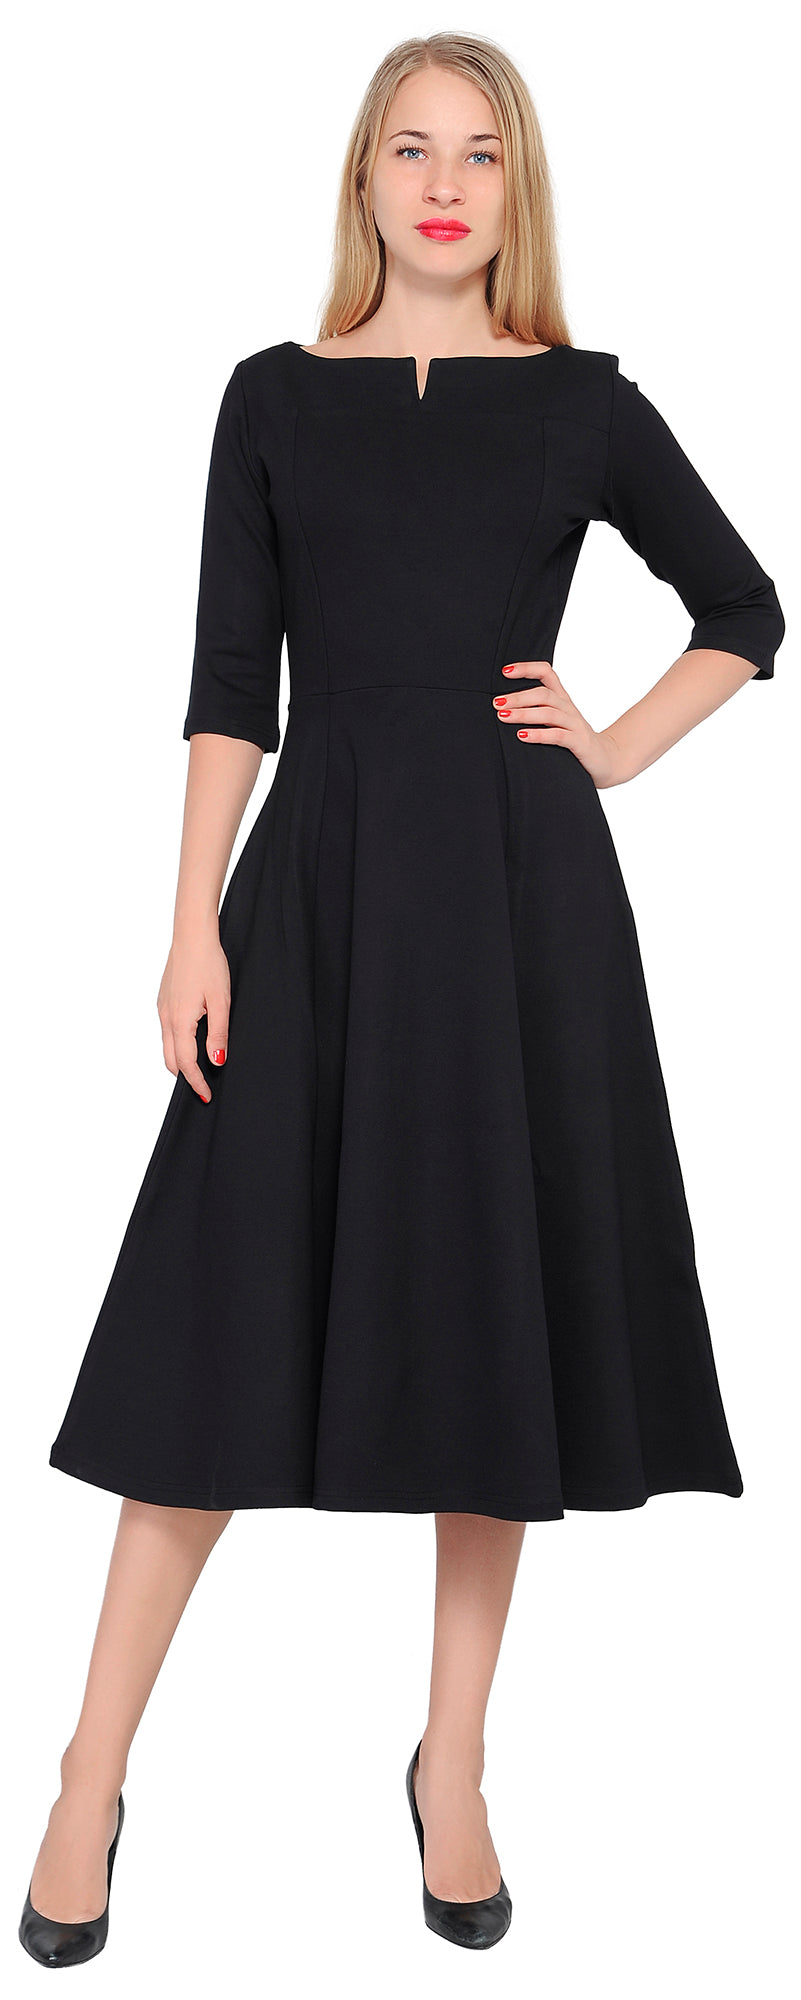 Women S Work Office Business Cocktail Party Dress Fit Flare Tea Midi